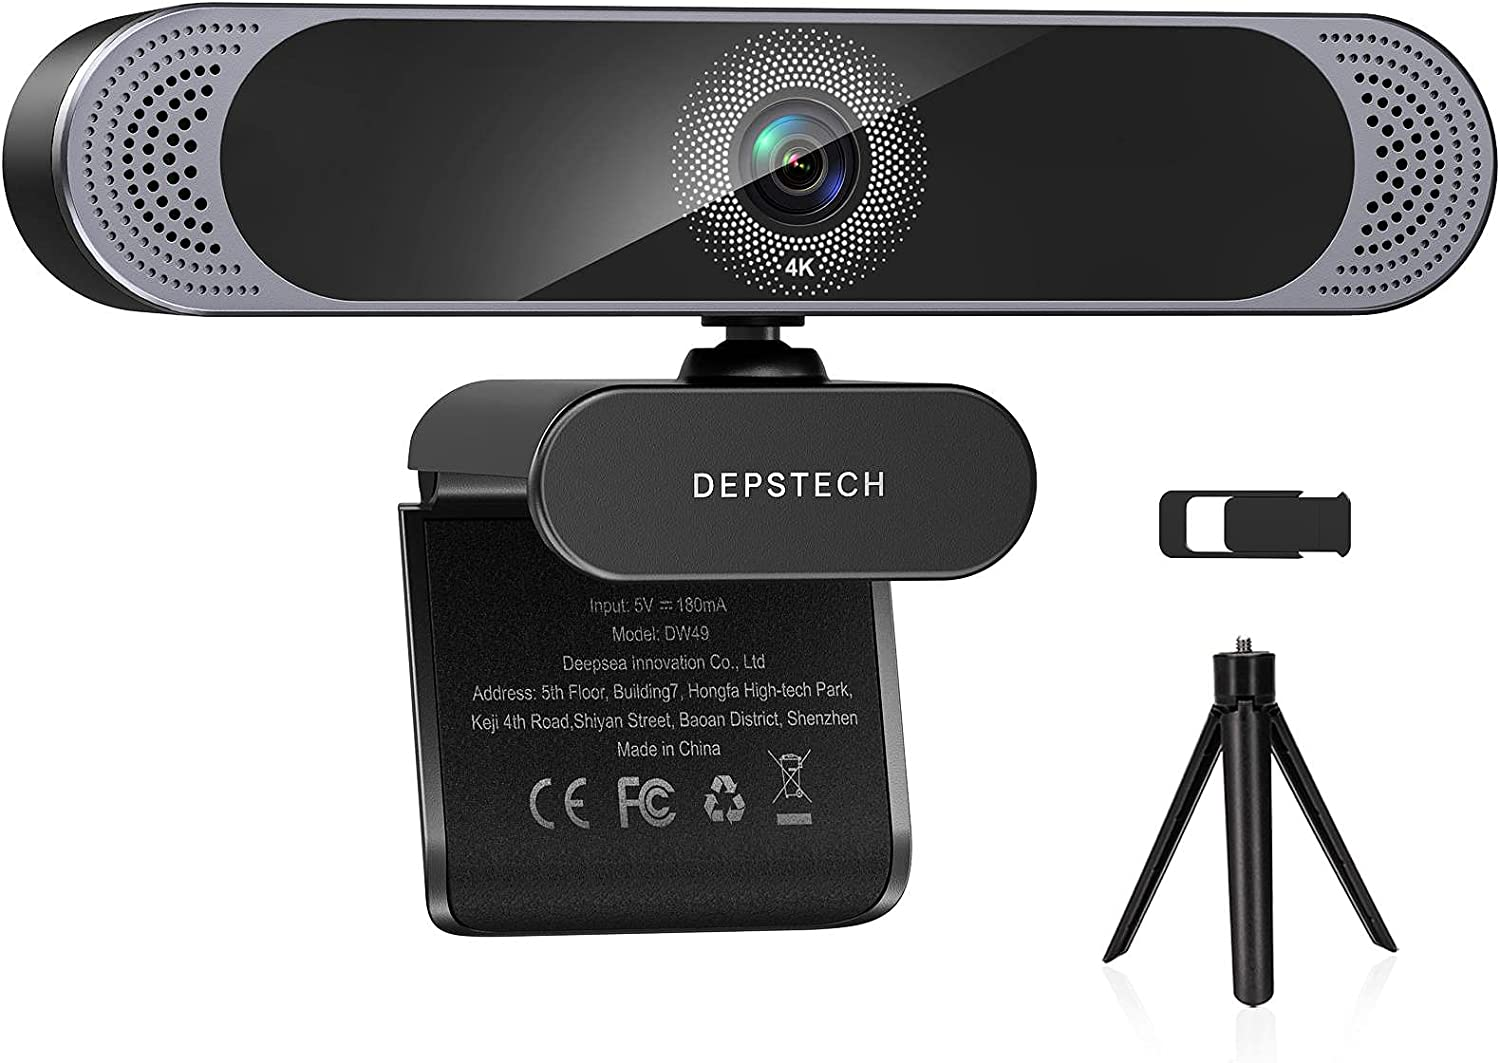 Webcam with Microphone, 2021 DEPSTECH 4K Webcam with Sony Sensor Autofocus Web Camera with Privacy Cover and Tripod, 8MP USB Webcam for Laptop PC, Streaming Webcam for Zoom, Skype, Facetime, YouTube